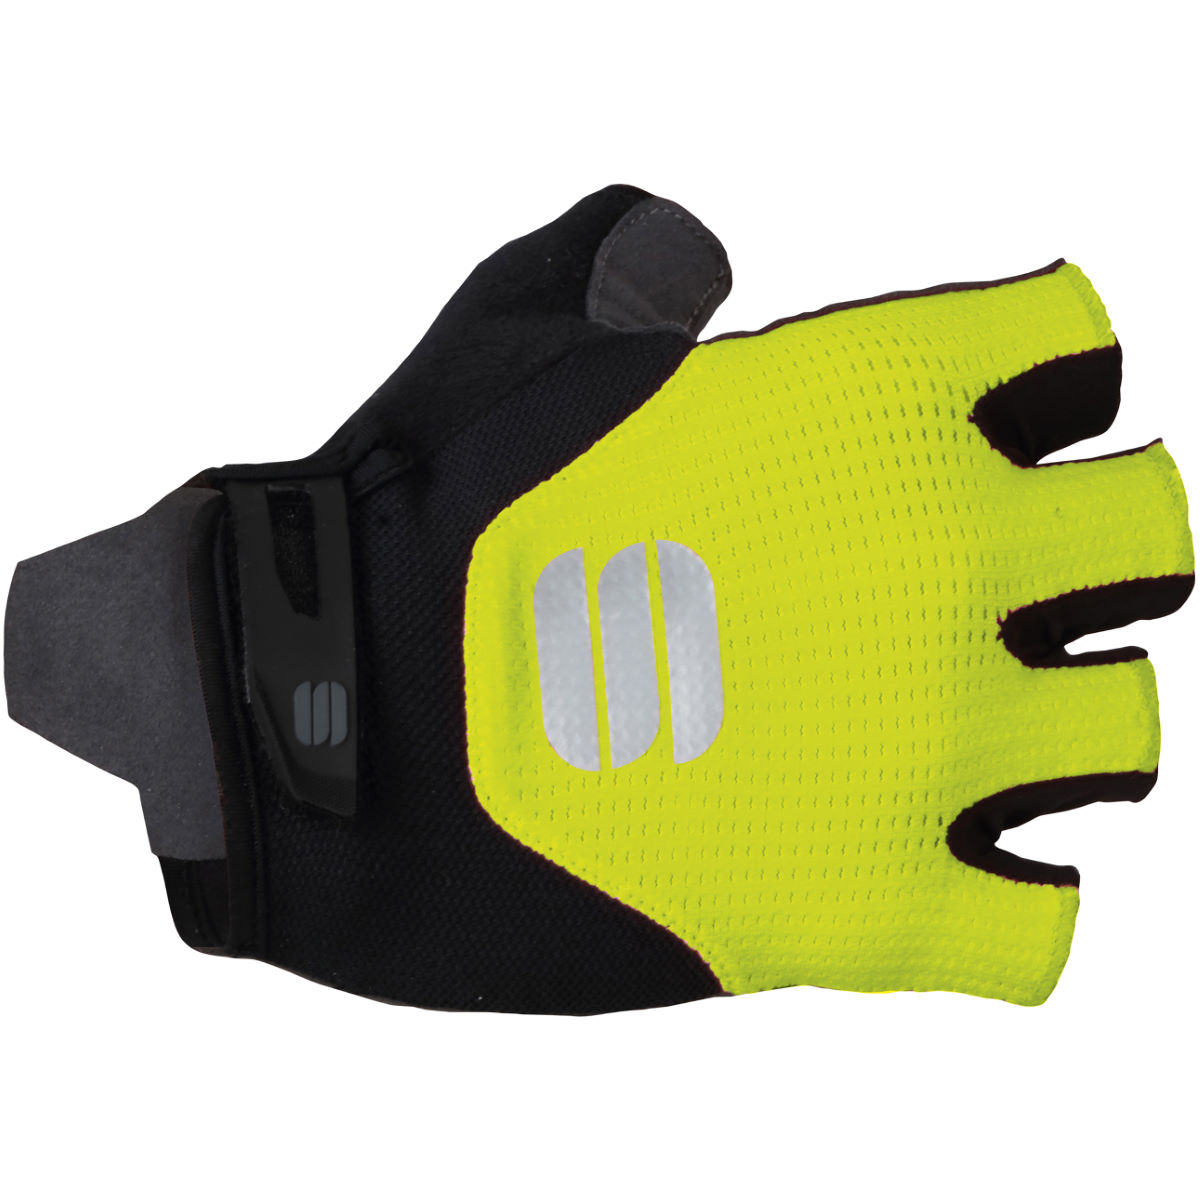 Sportful Neo Cycling Gloves - Xl Black/yellow  Gloves